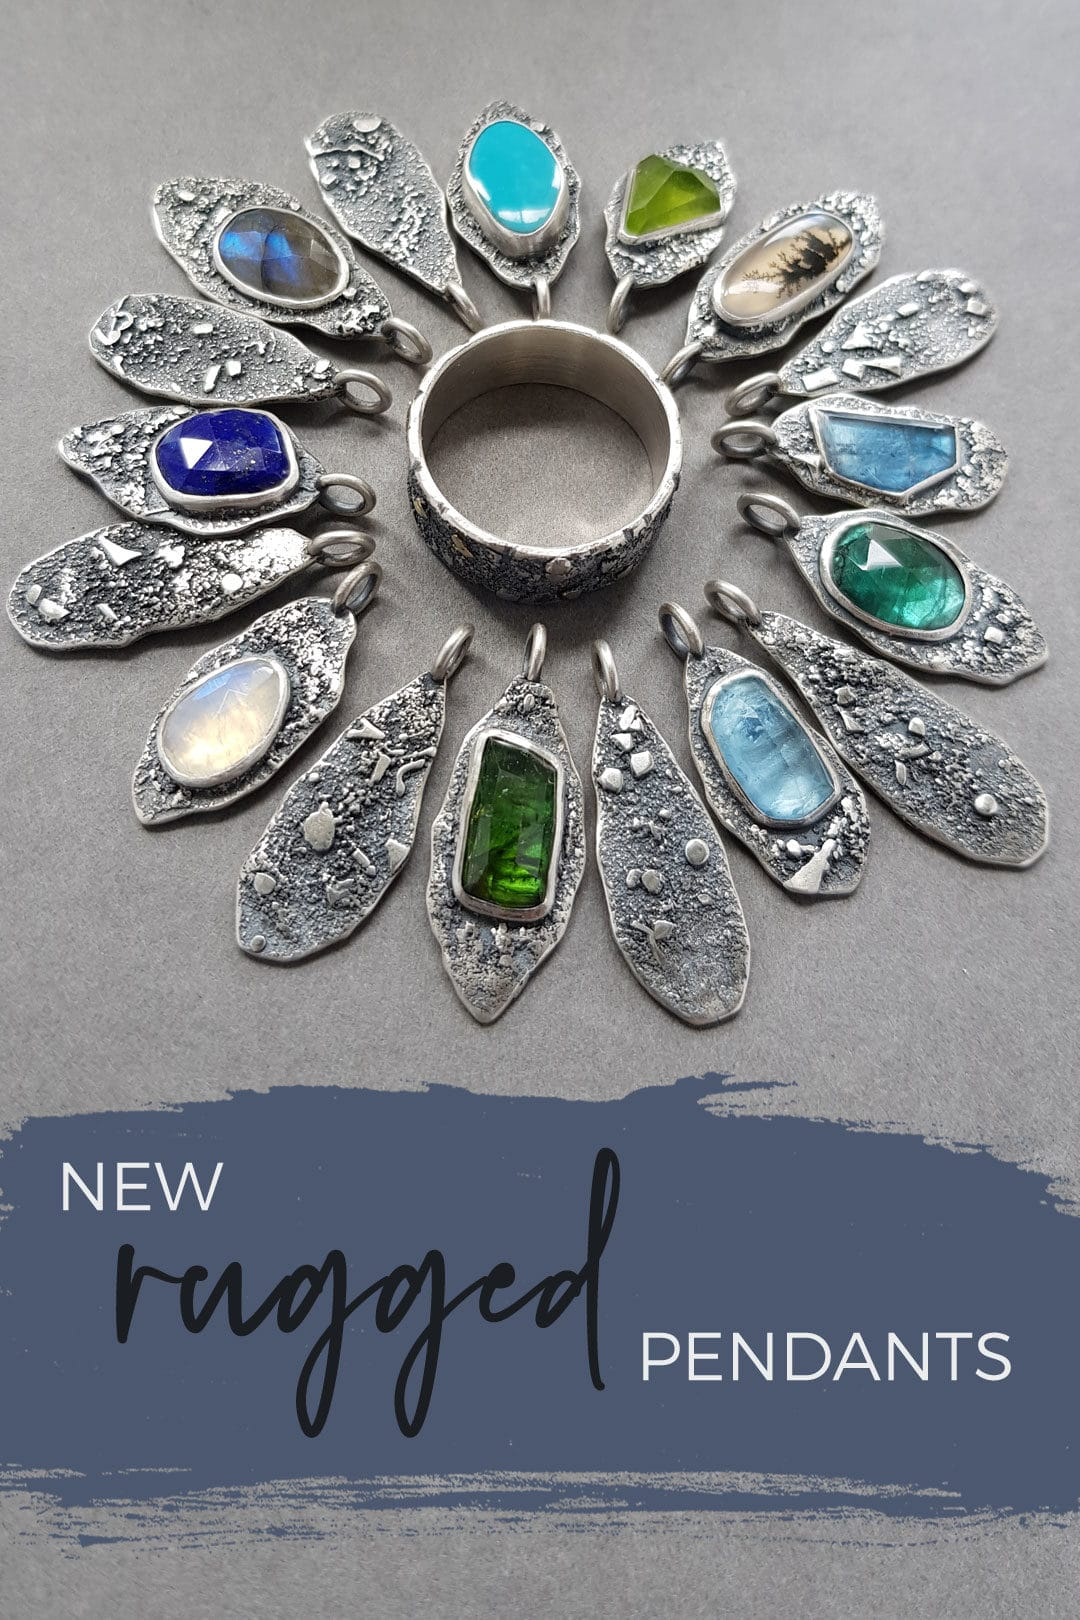 10 new Rugged cluster pendants in the shop!